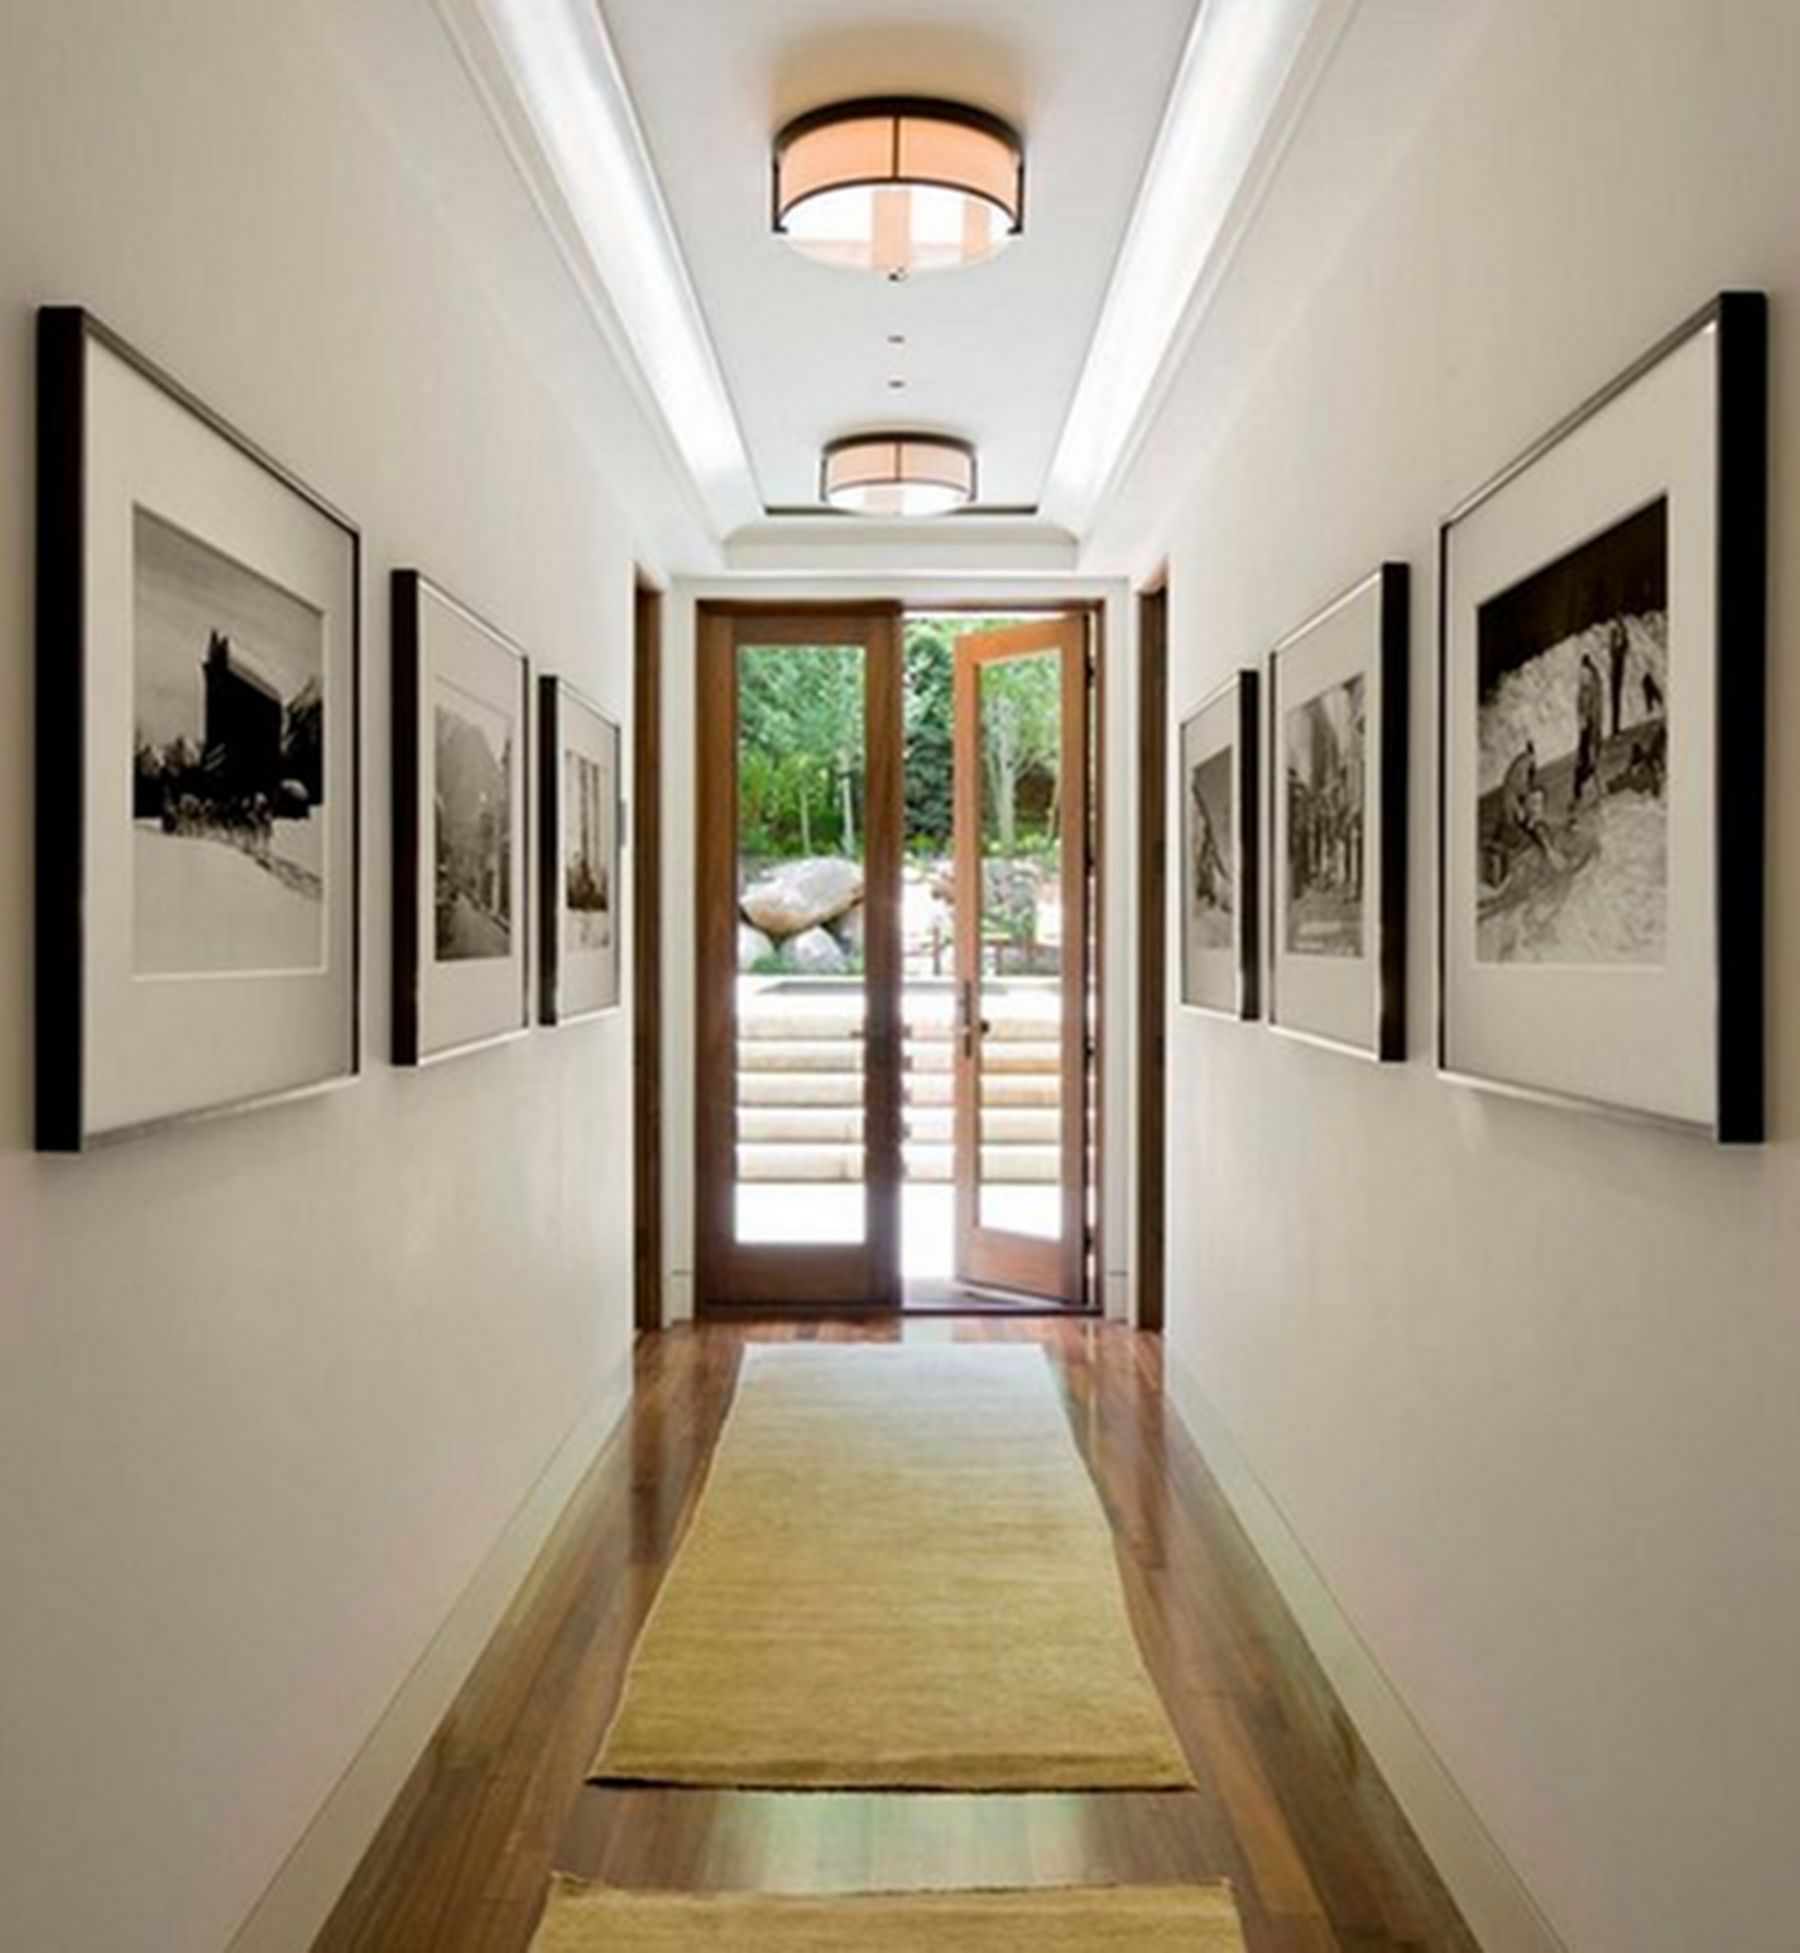 home hallway in 2020 Narrow hallway decorating, Small